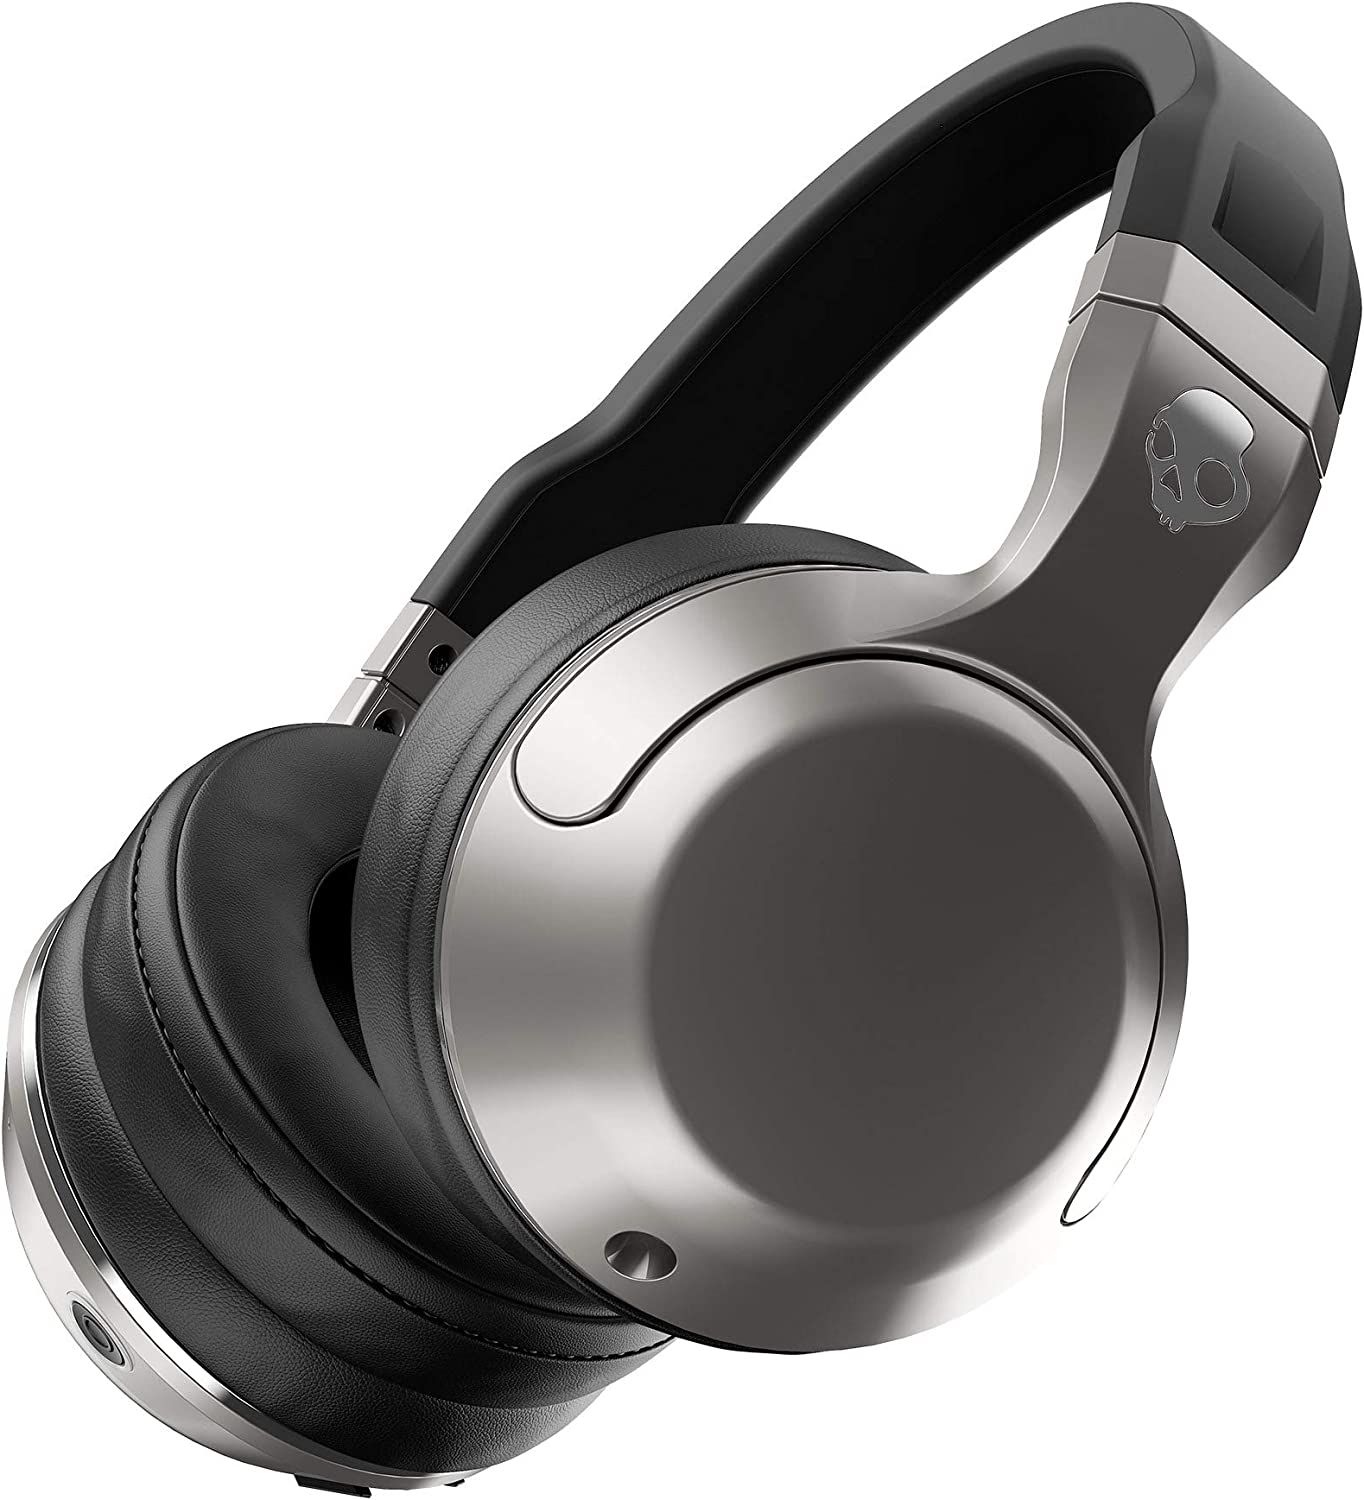 Skullcandy Hesh 2 Wireless Over-Ear Headphone – Silver Black